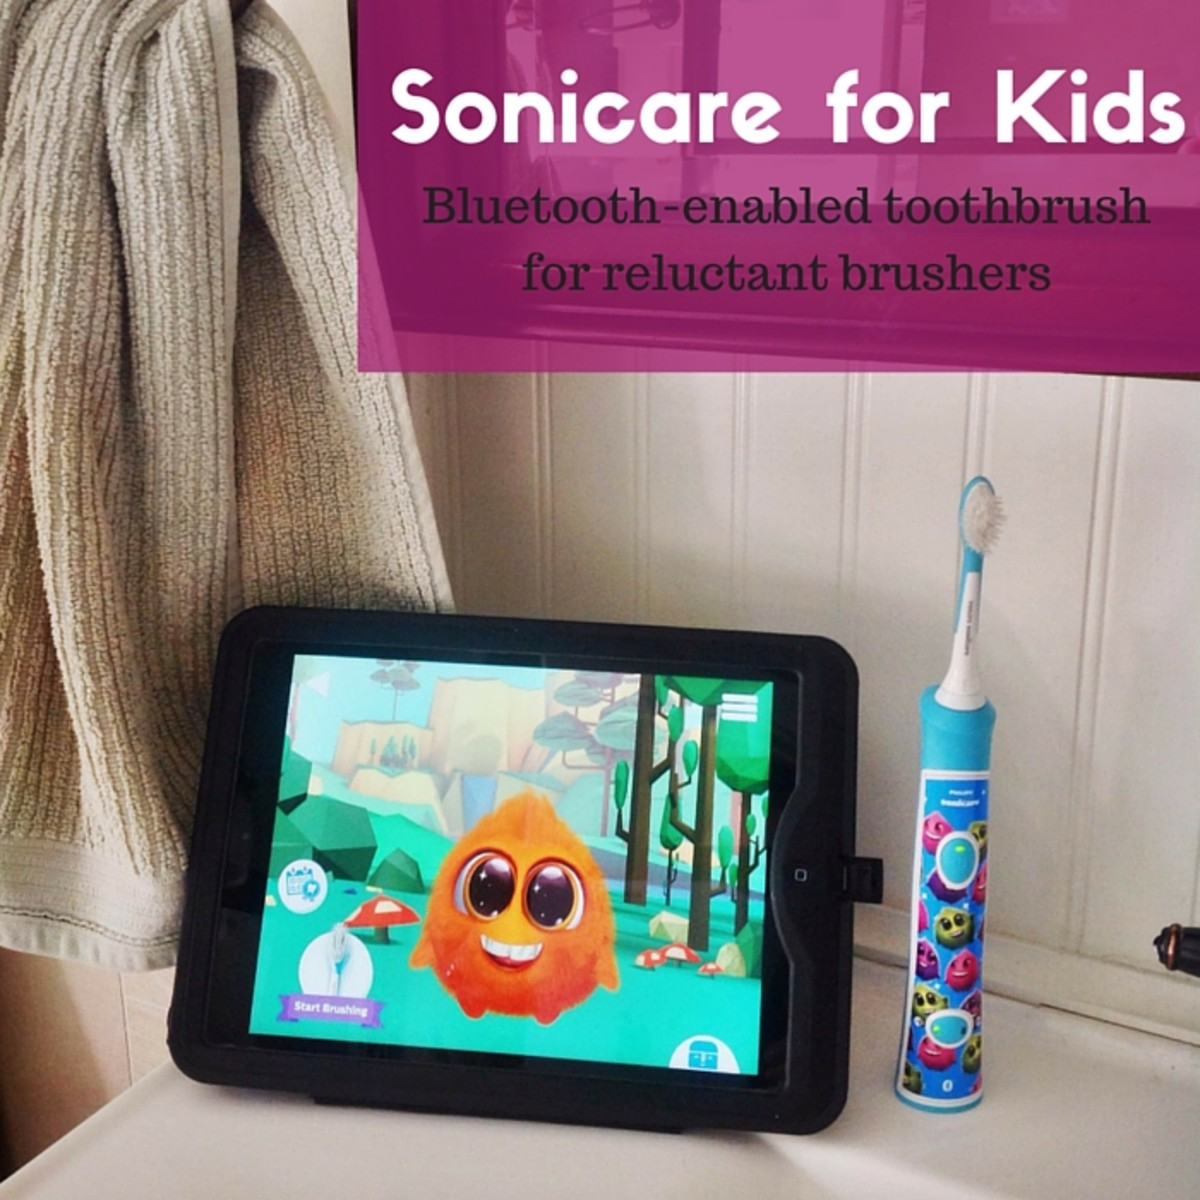 Sonicare Bluetooth-Enabled Toothbrush for Kids